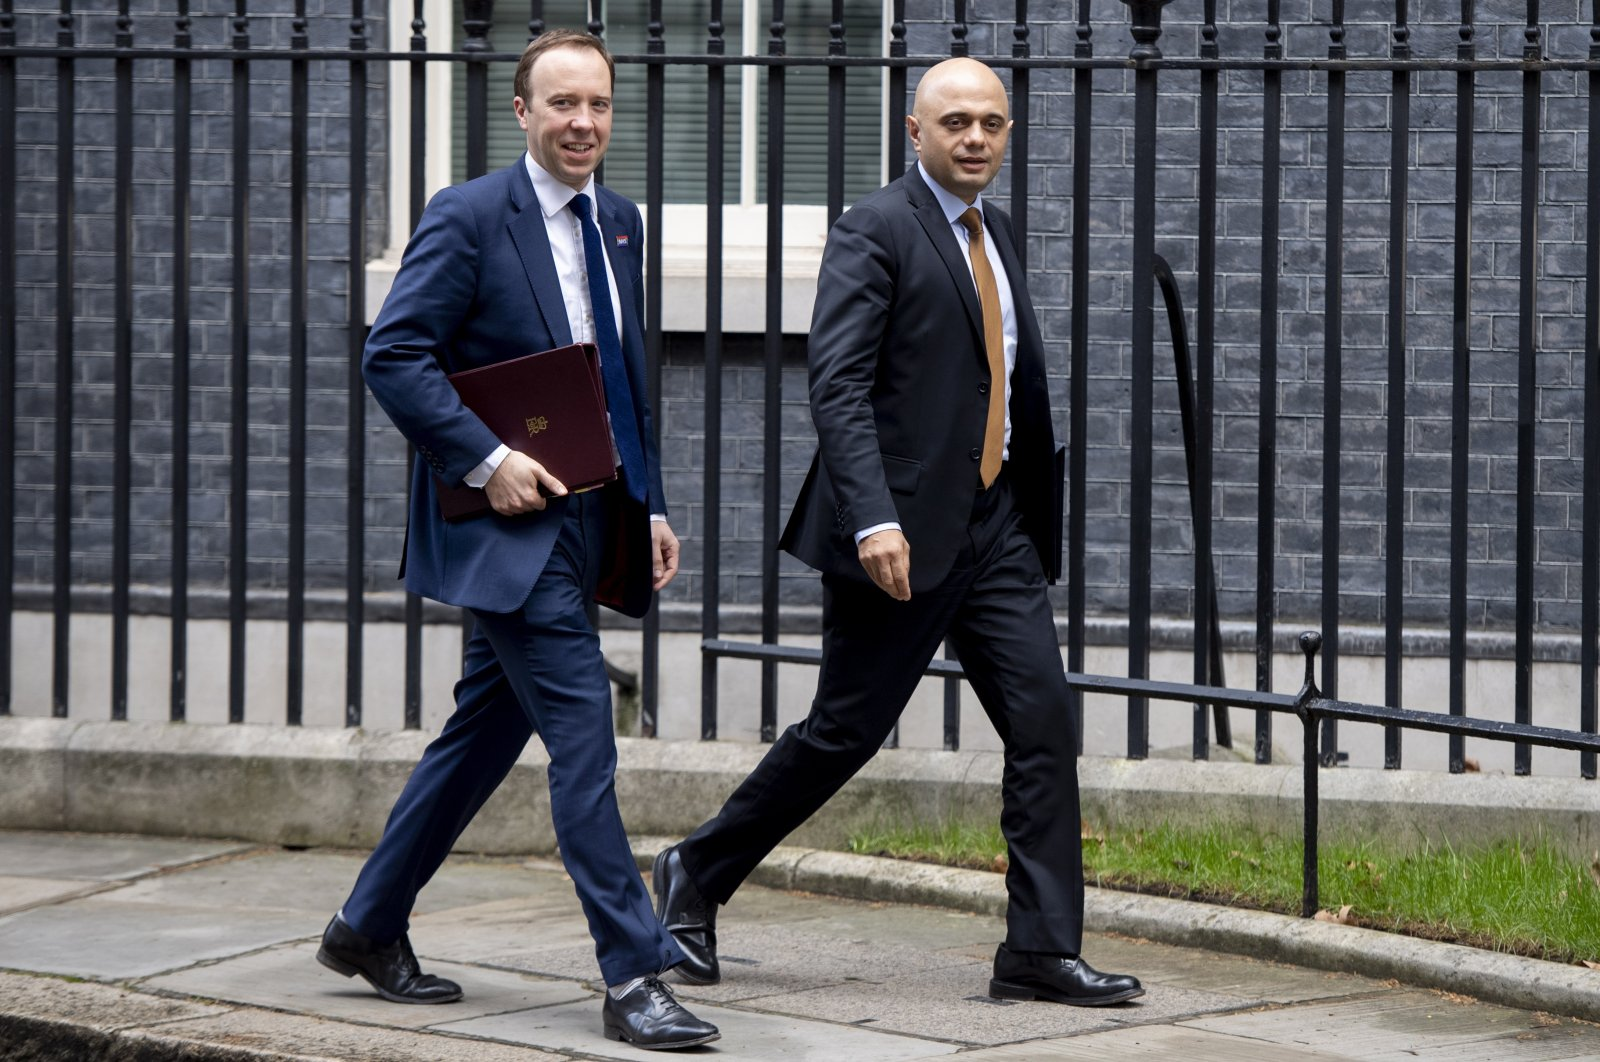 Former British Secretary of State for Health Matt Hancock (L) and then-Home Secretary Sajid Javid (R) leave after a cabinet meeting at Downing Street, London, the U.K., March 19, 2019. (EPA Photo)